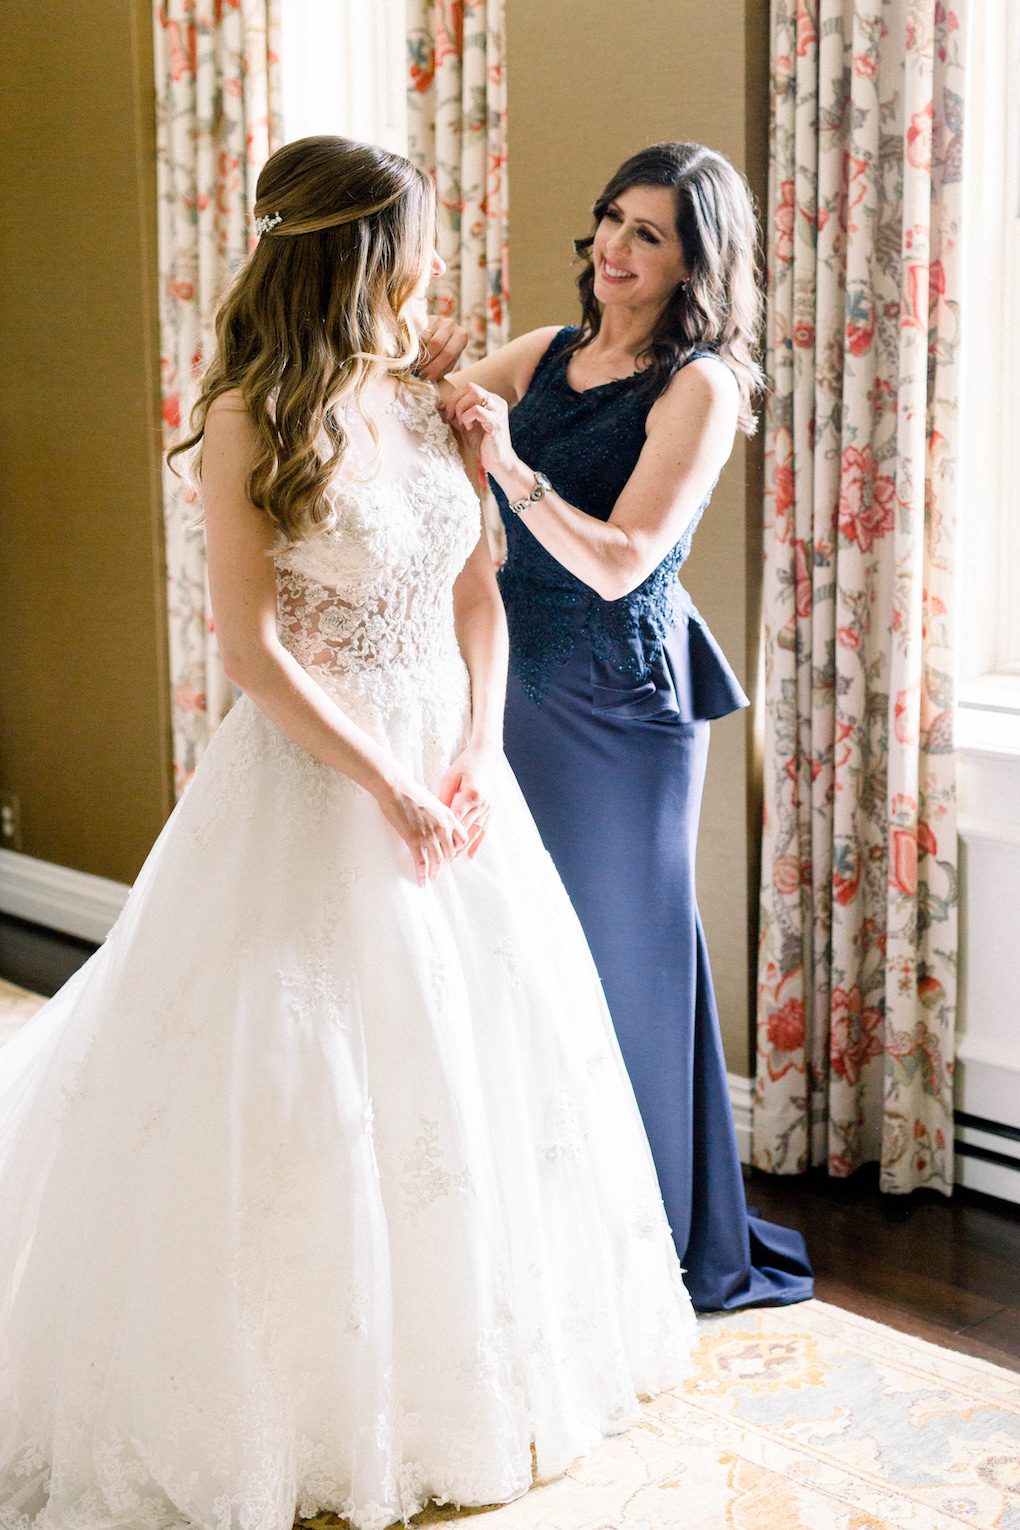 Bride getting into wedding dress: Romantic Fairytale wedding at the Omni William Penn in Pittsburgh, PA planned by Exhale Events. Find more wedding inspiration at exhale-events.com!